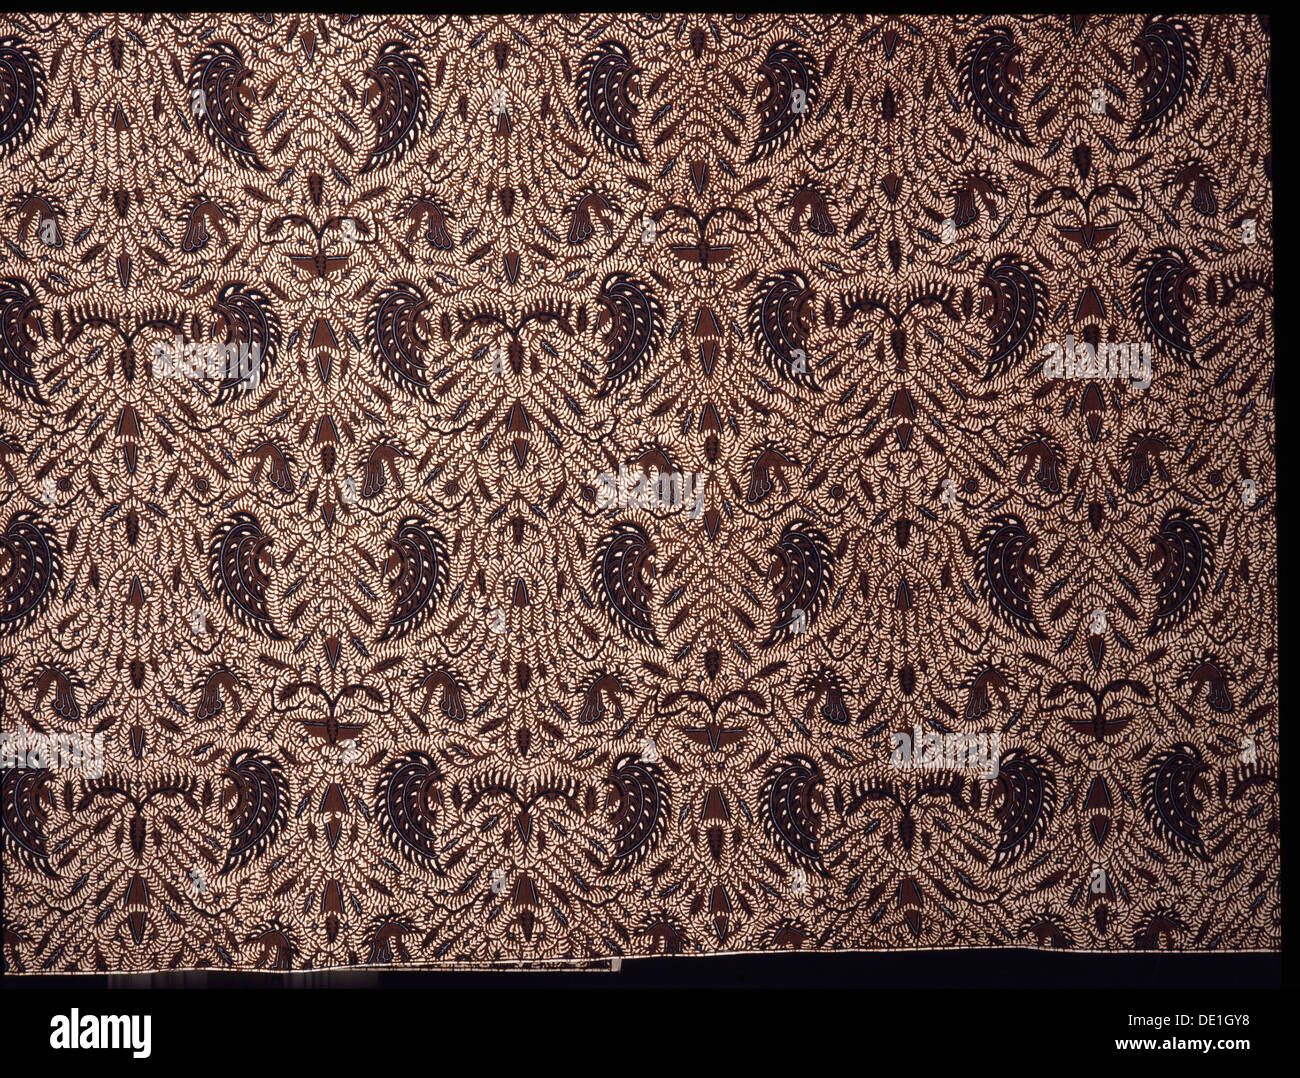 Detail of a batik kain with a design incorporating stylised wings. - Stock Image